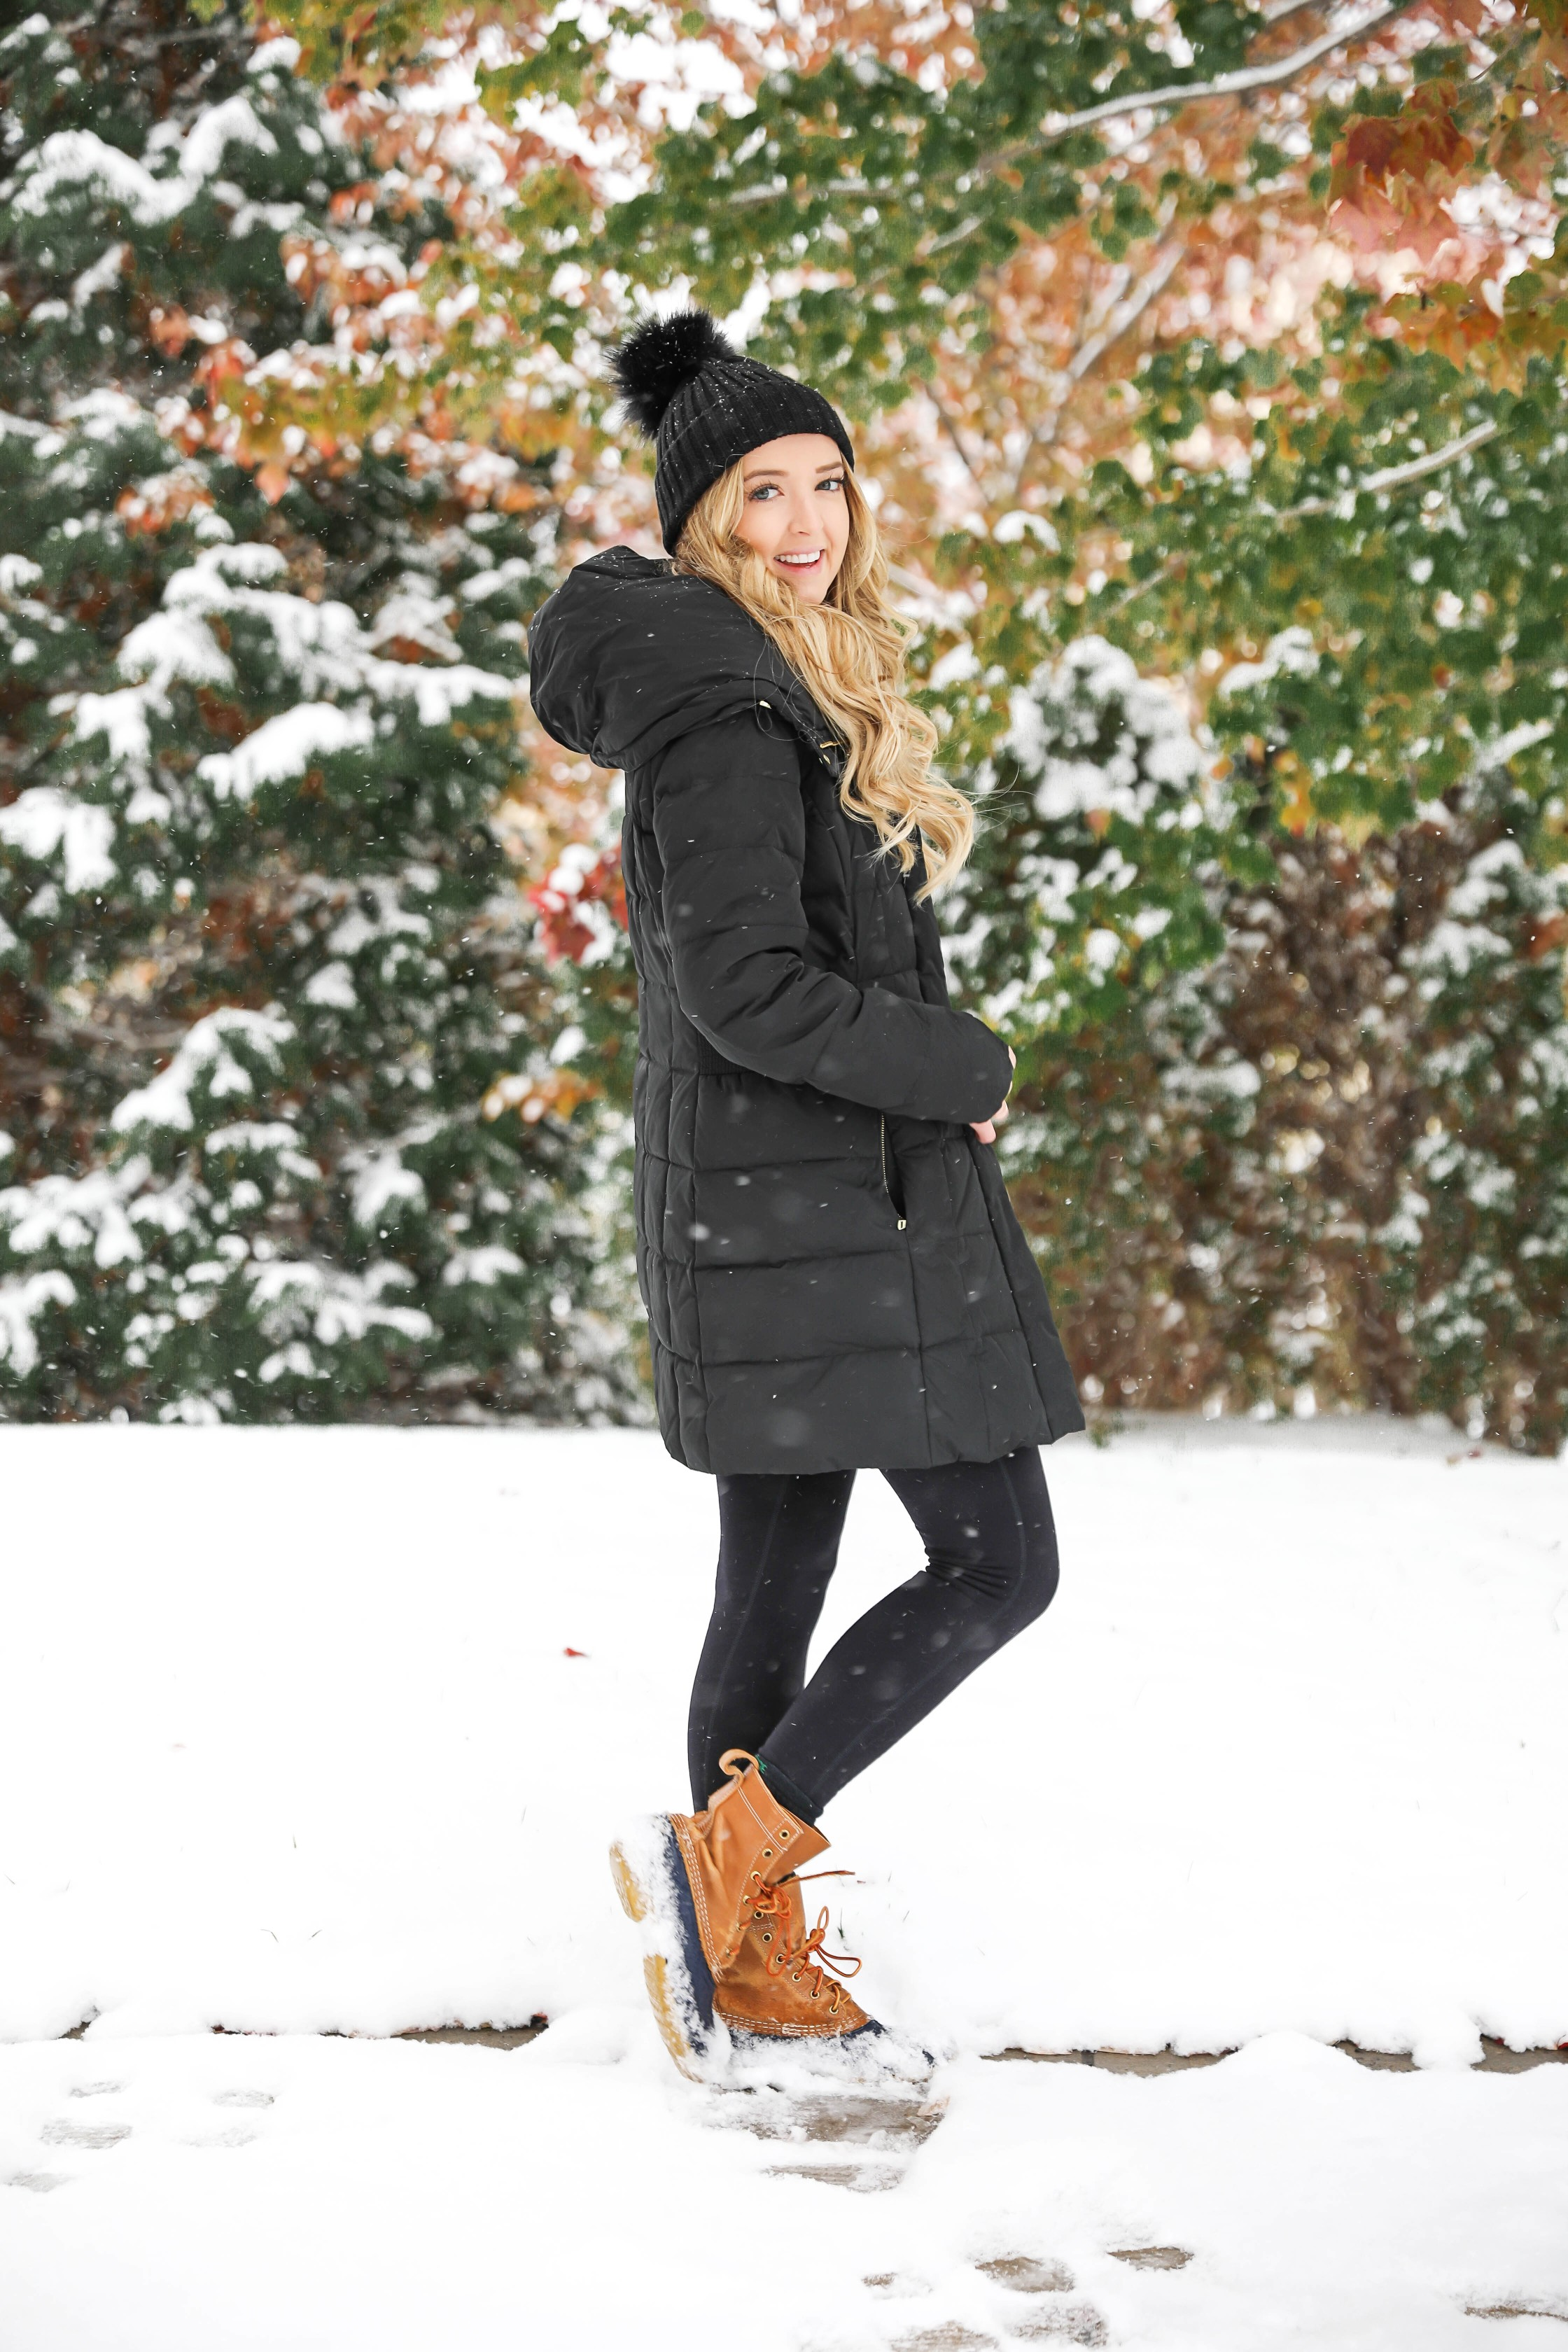 The best winter coat for this winter! This coat is so flattering and warm! It's by Cole Haanm I love these winter photos and the prettiest snow! Details on fashion blog daily dose of charm by lauren lindmark